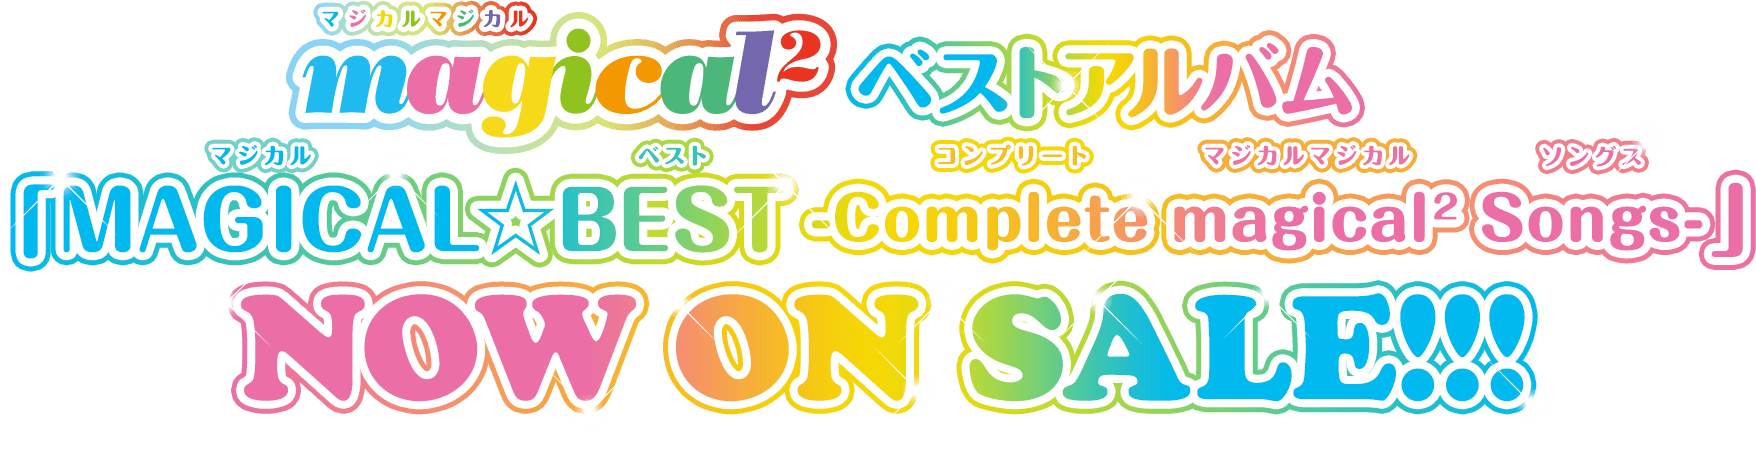 magical²ベストアルバム「MAGICAL☆BEST -Complete magical² Songs-」NOW ON SALE!!!